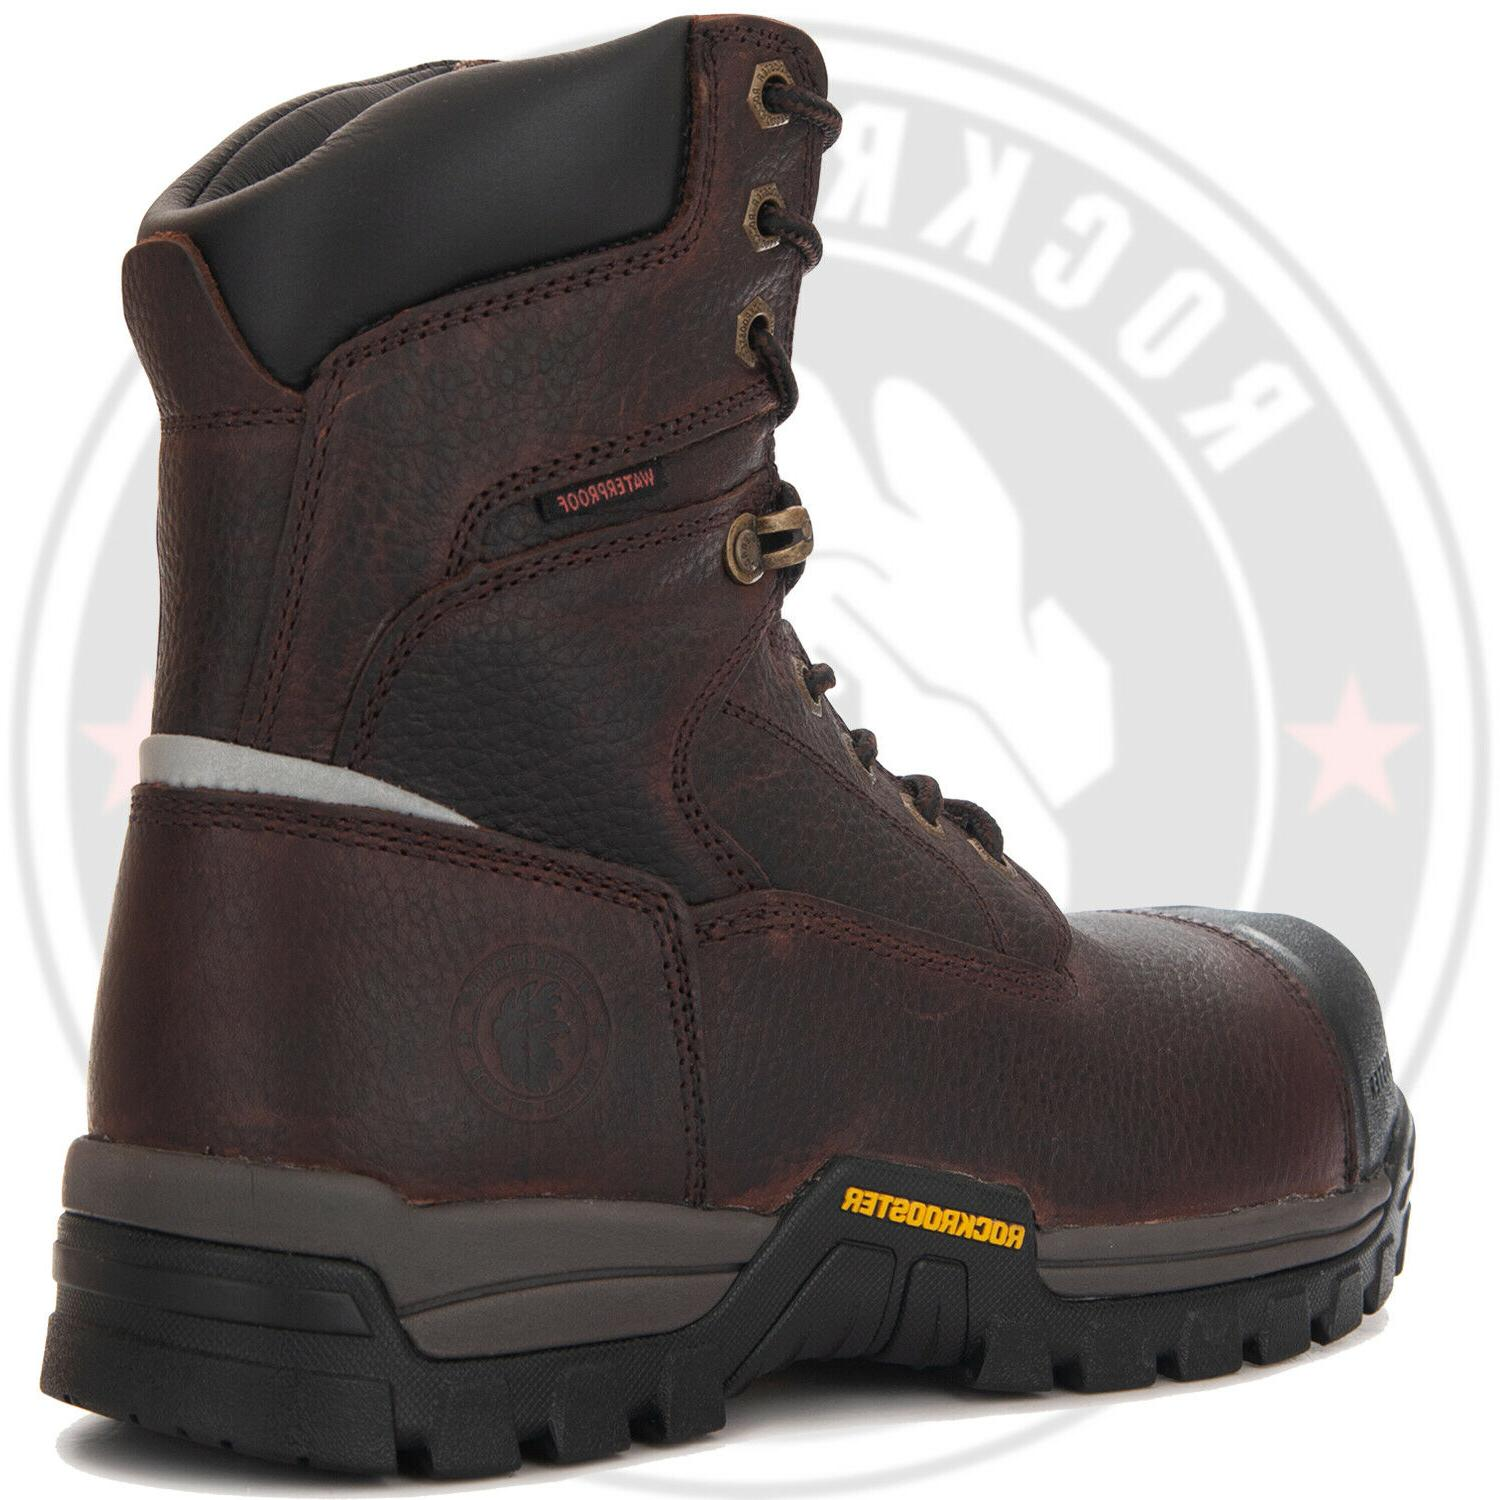 ROCKROOSTER Boot up Anti-puncture Boots